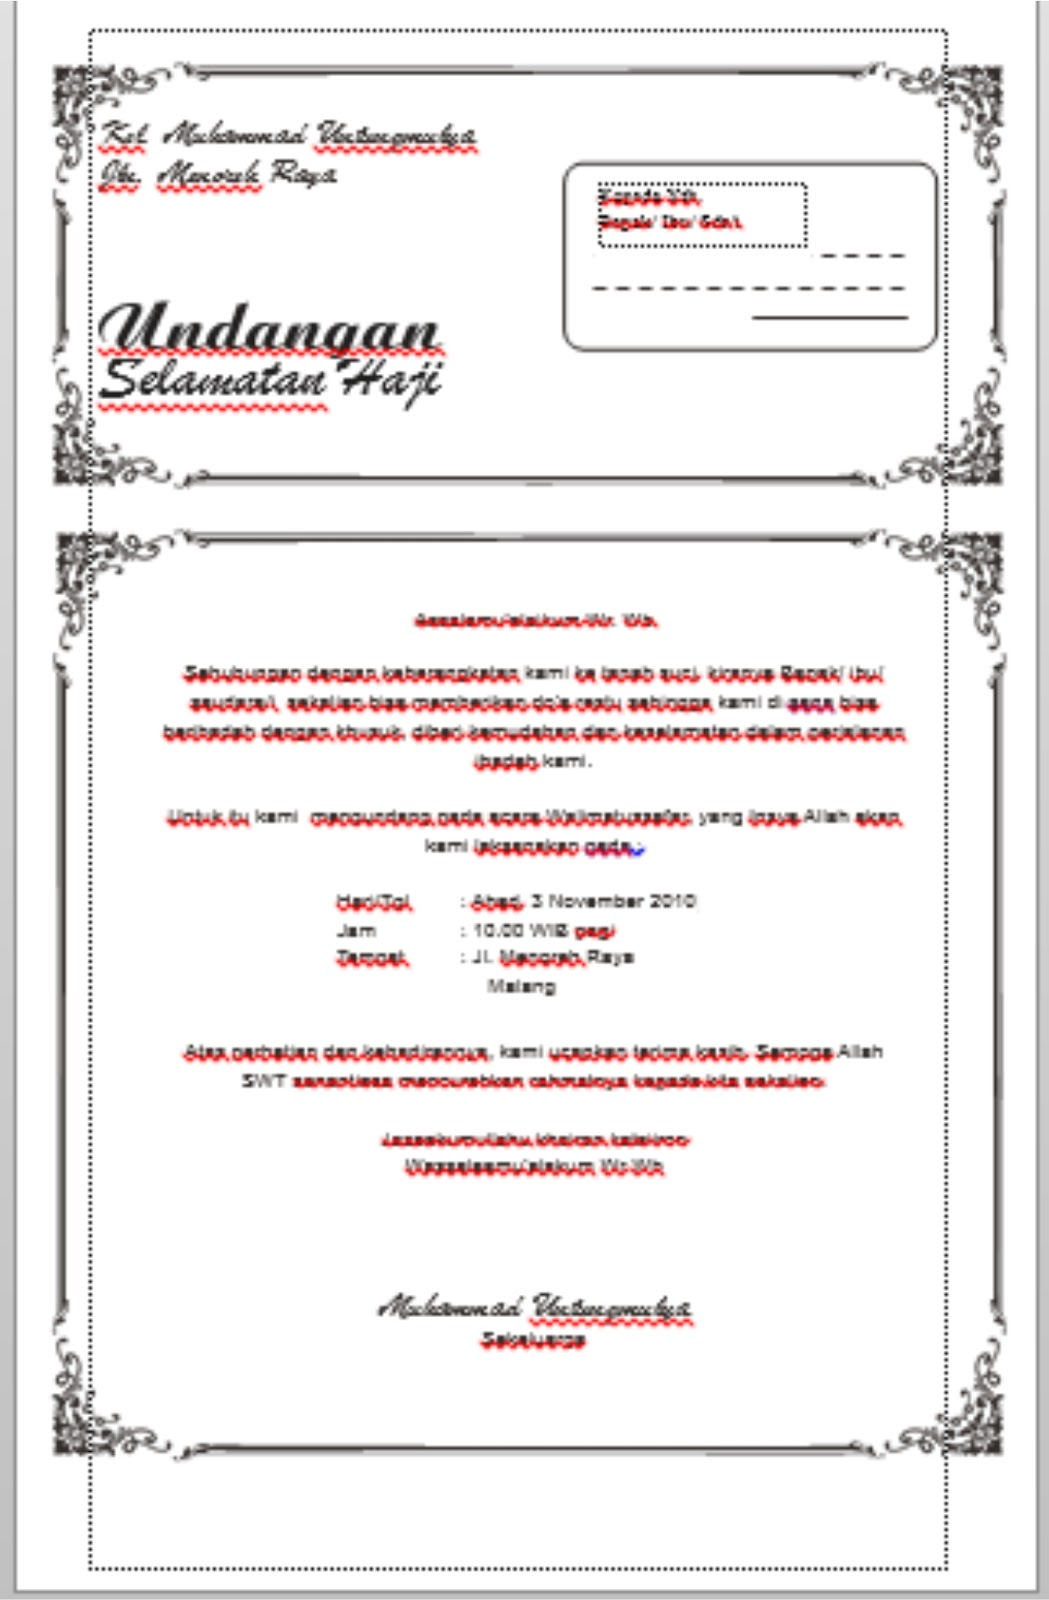 home design creatif: download undangan tasyakuran Haji